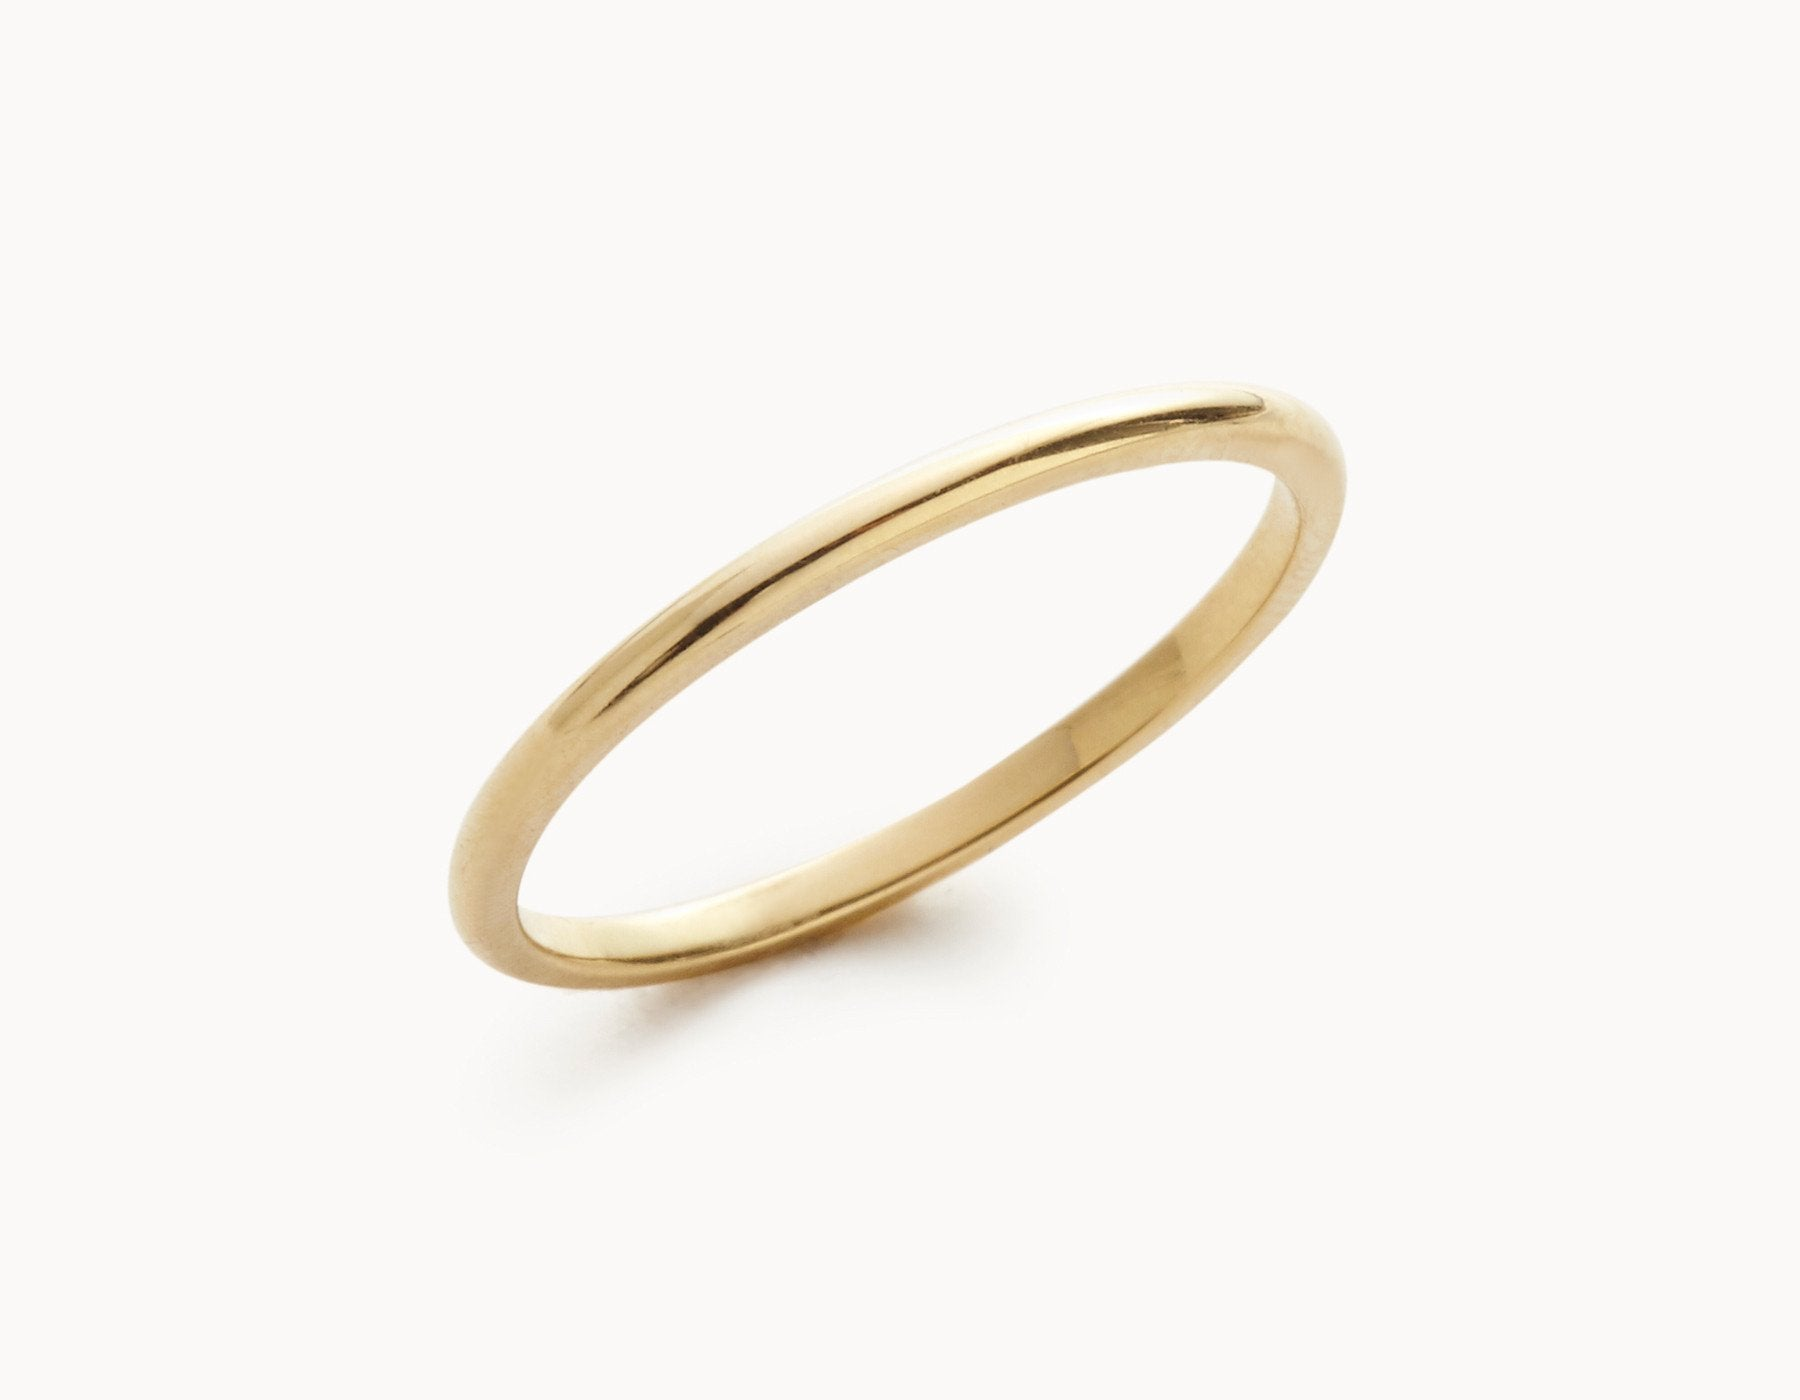 Mock - The 1.5 Round - Yellow Gold